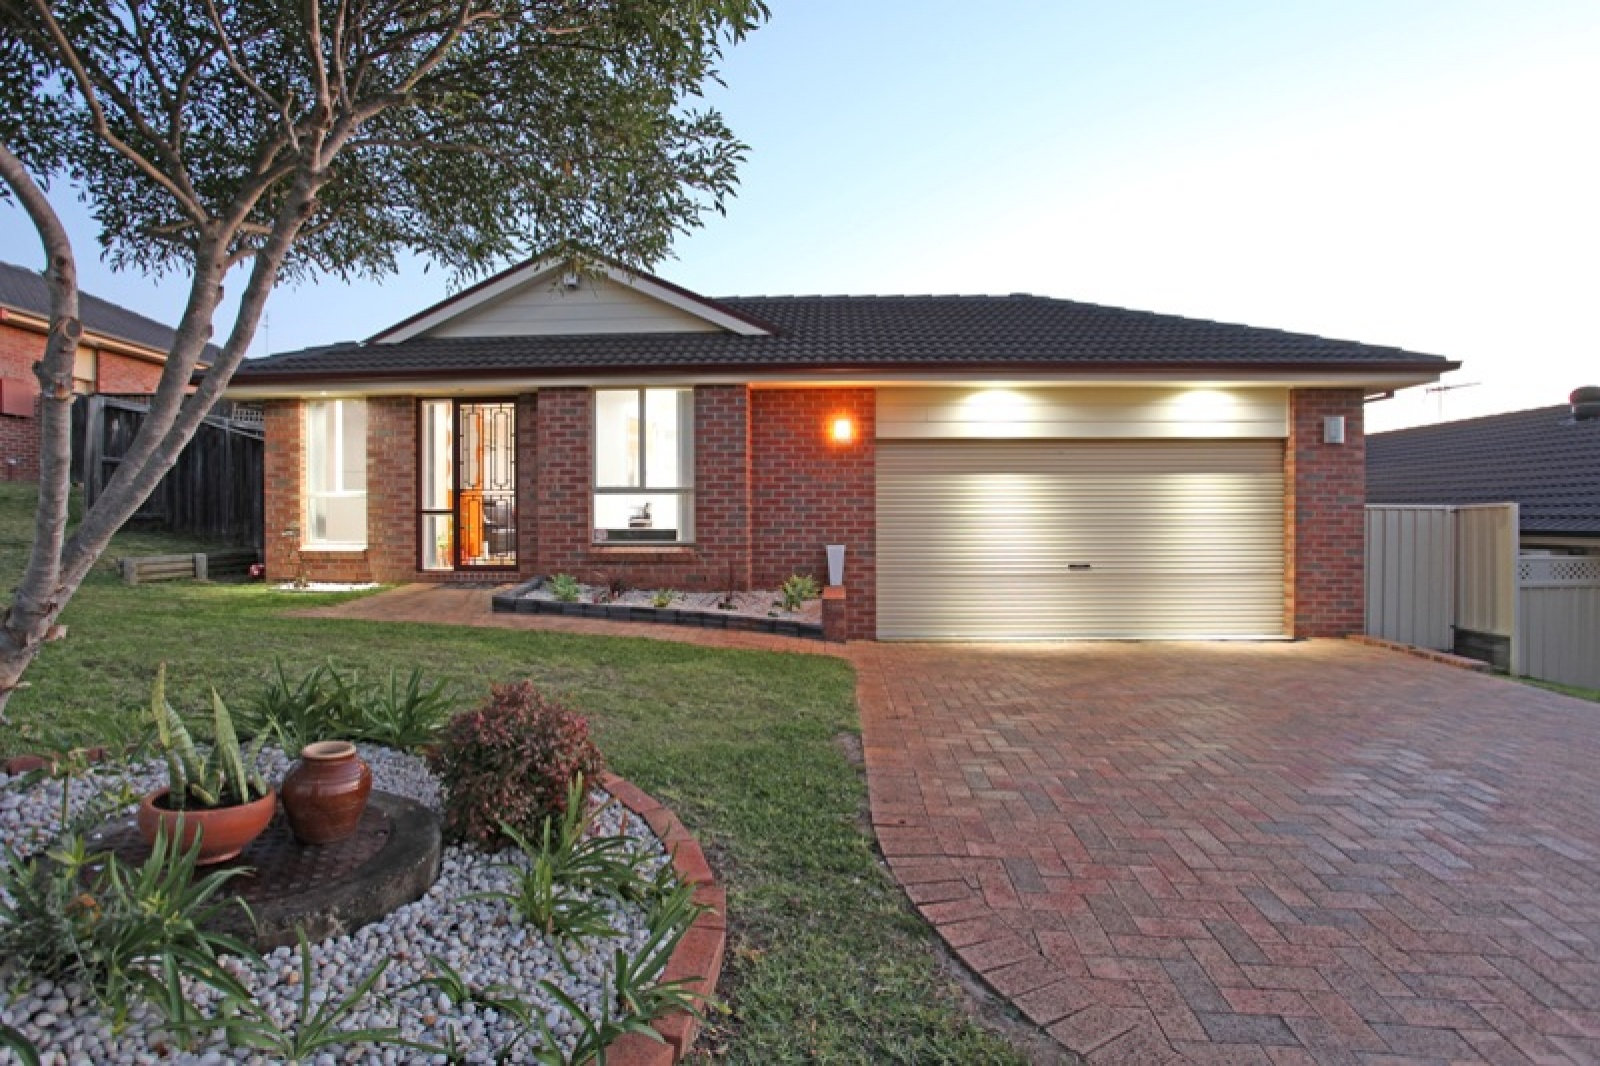 18 St Catherine Close,Blair Athol,NSW,3 Bedrooms Bedrooms,1 BathroomBathrooms,House,St Catherine Close,1559